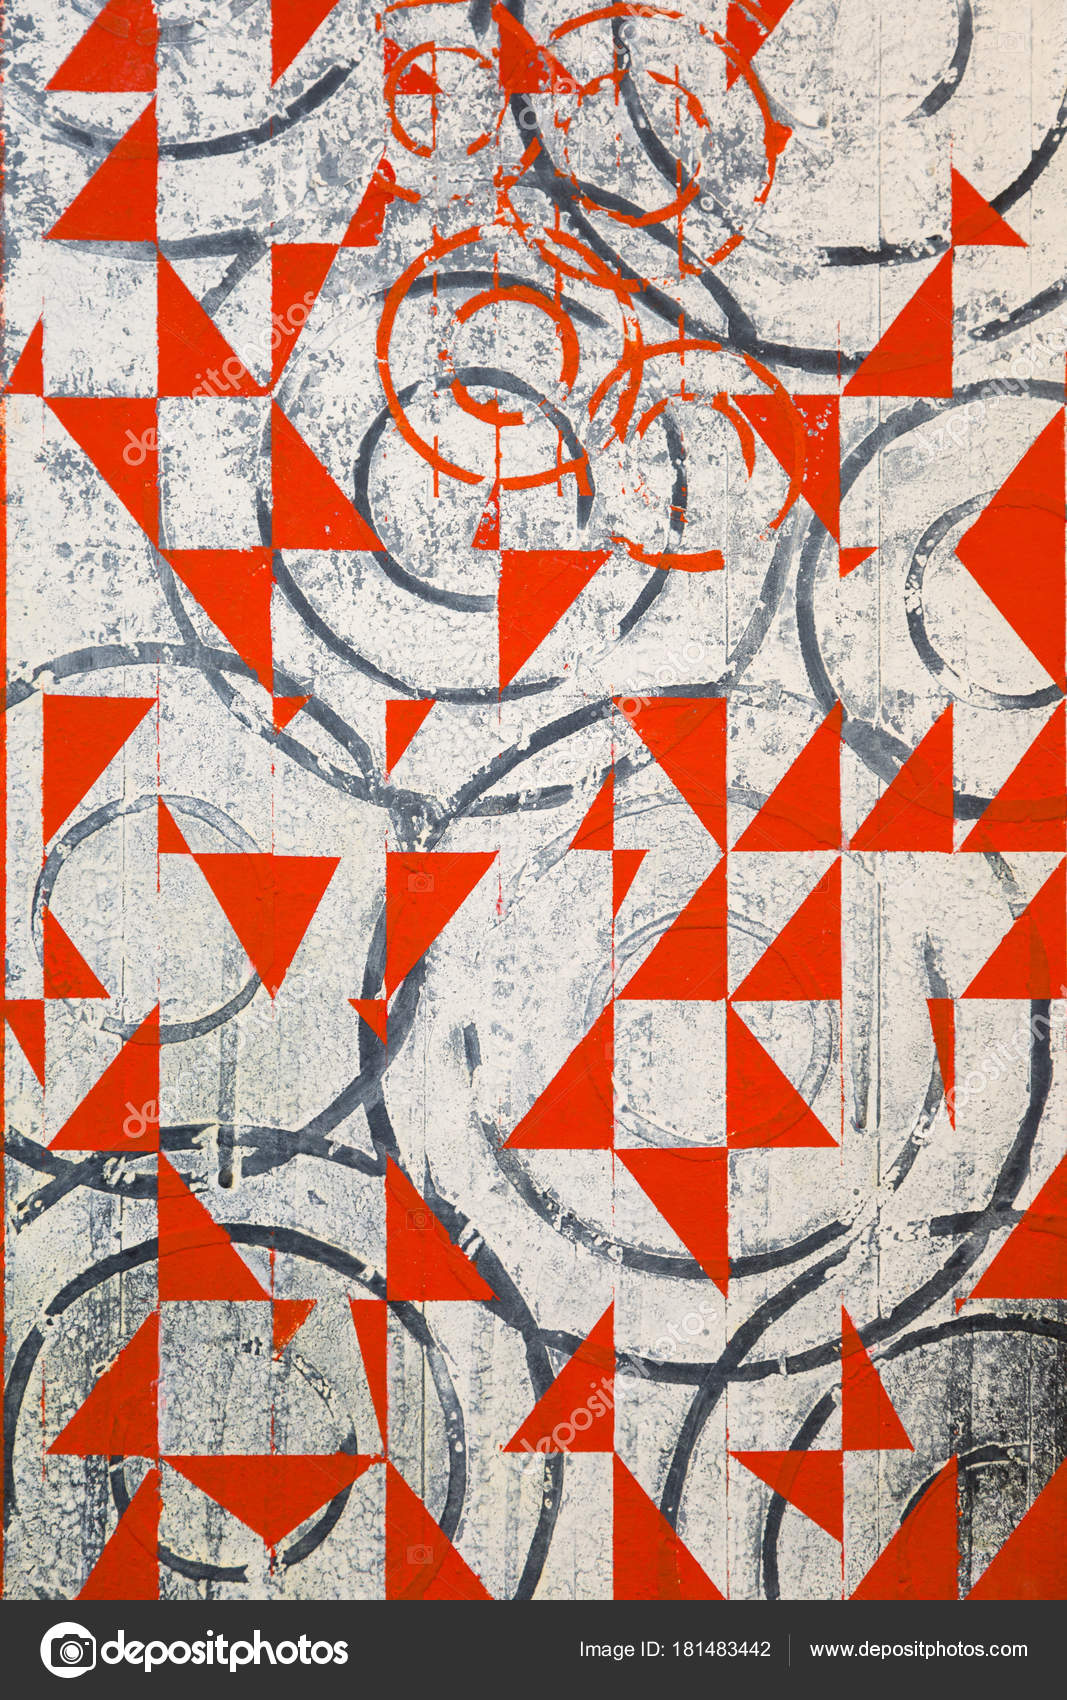 Abstract Painting Art With Red And Black Geometric Shapes